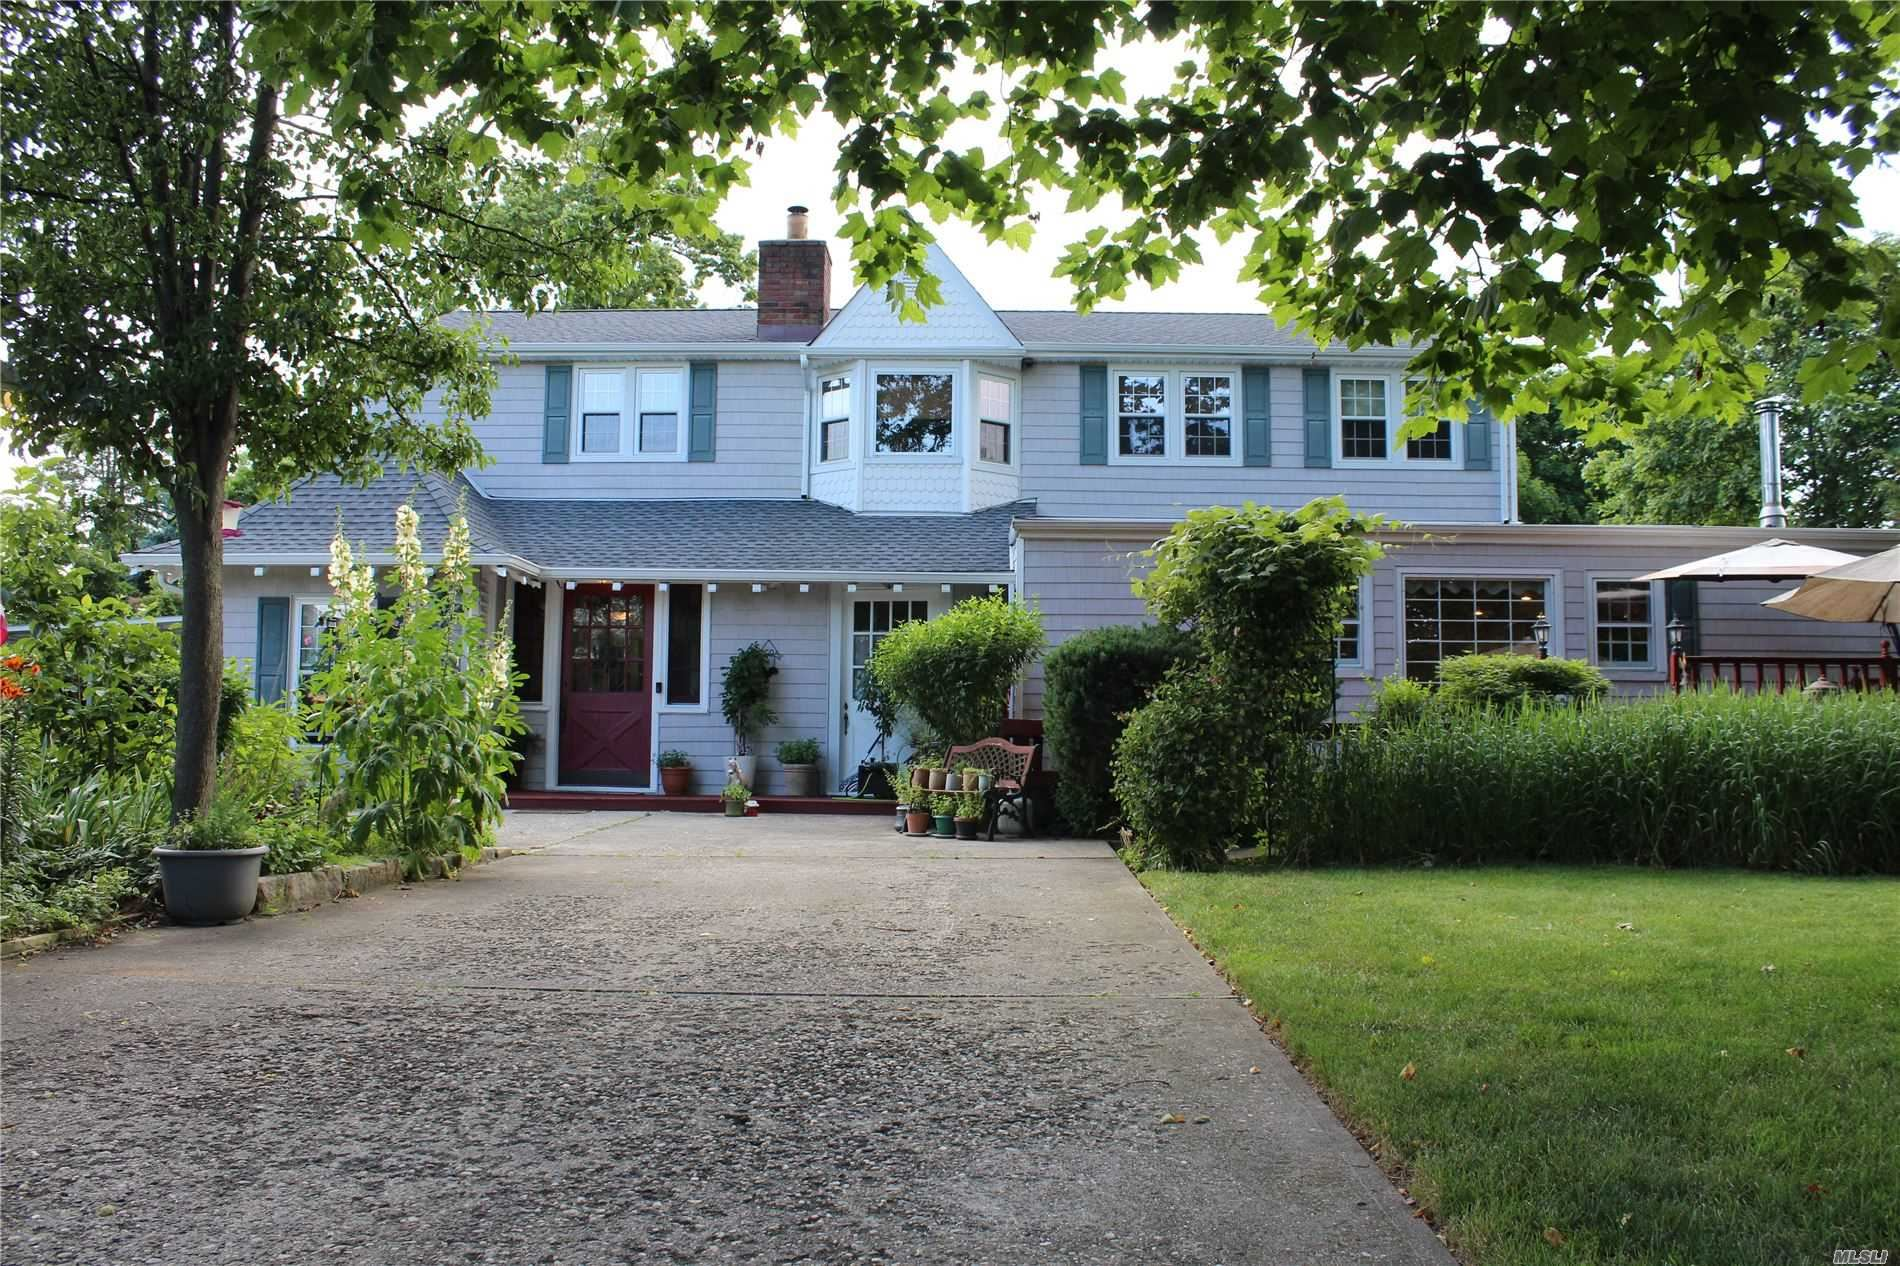 14 Michalis Ct, West Islip, NY 11795 - MLS#: 3228579